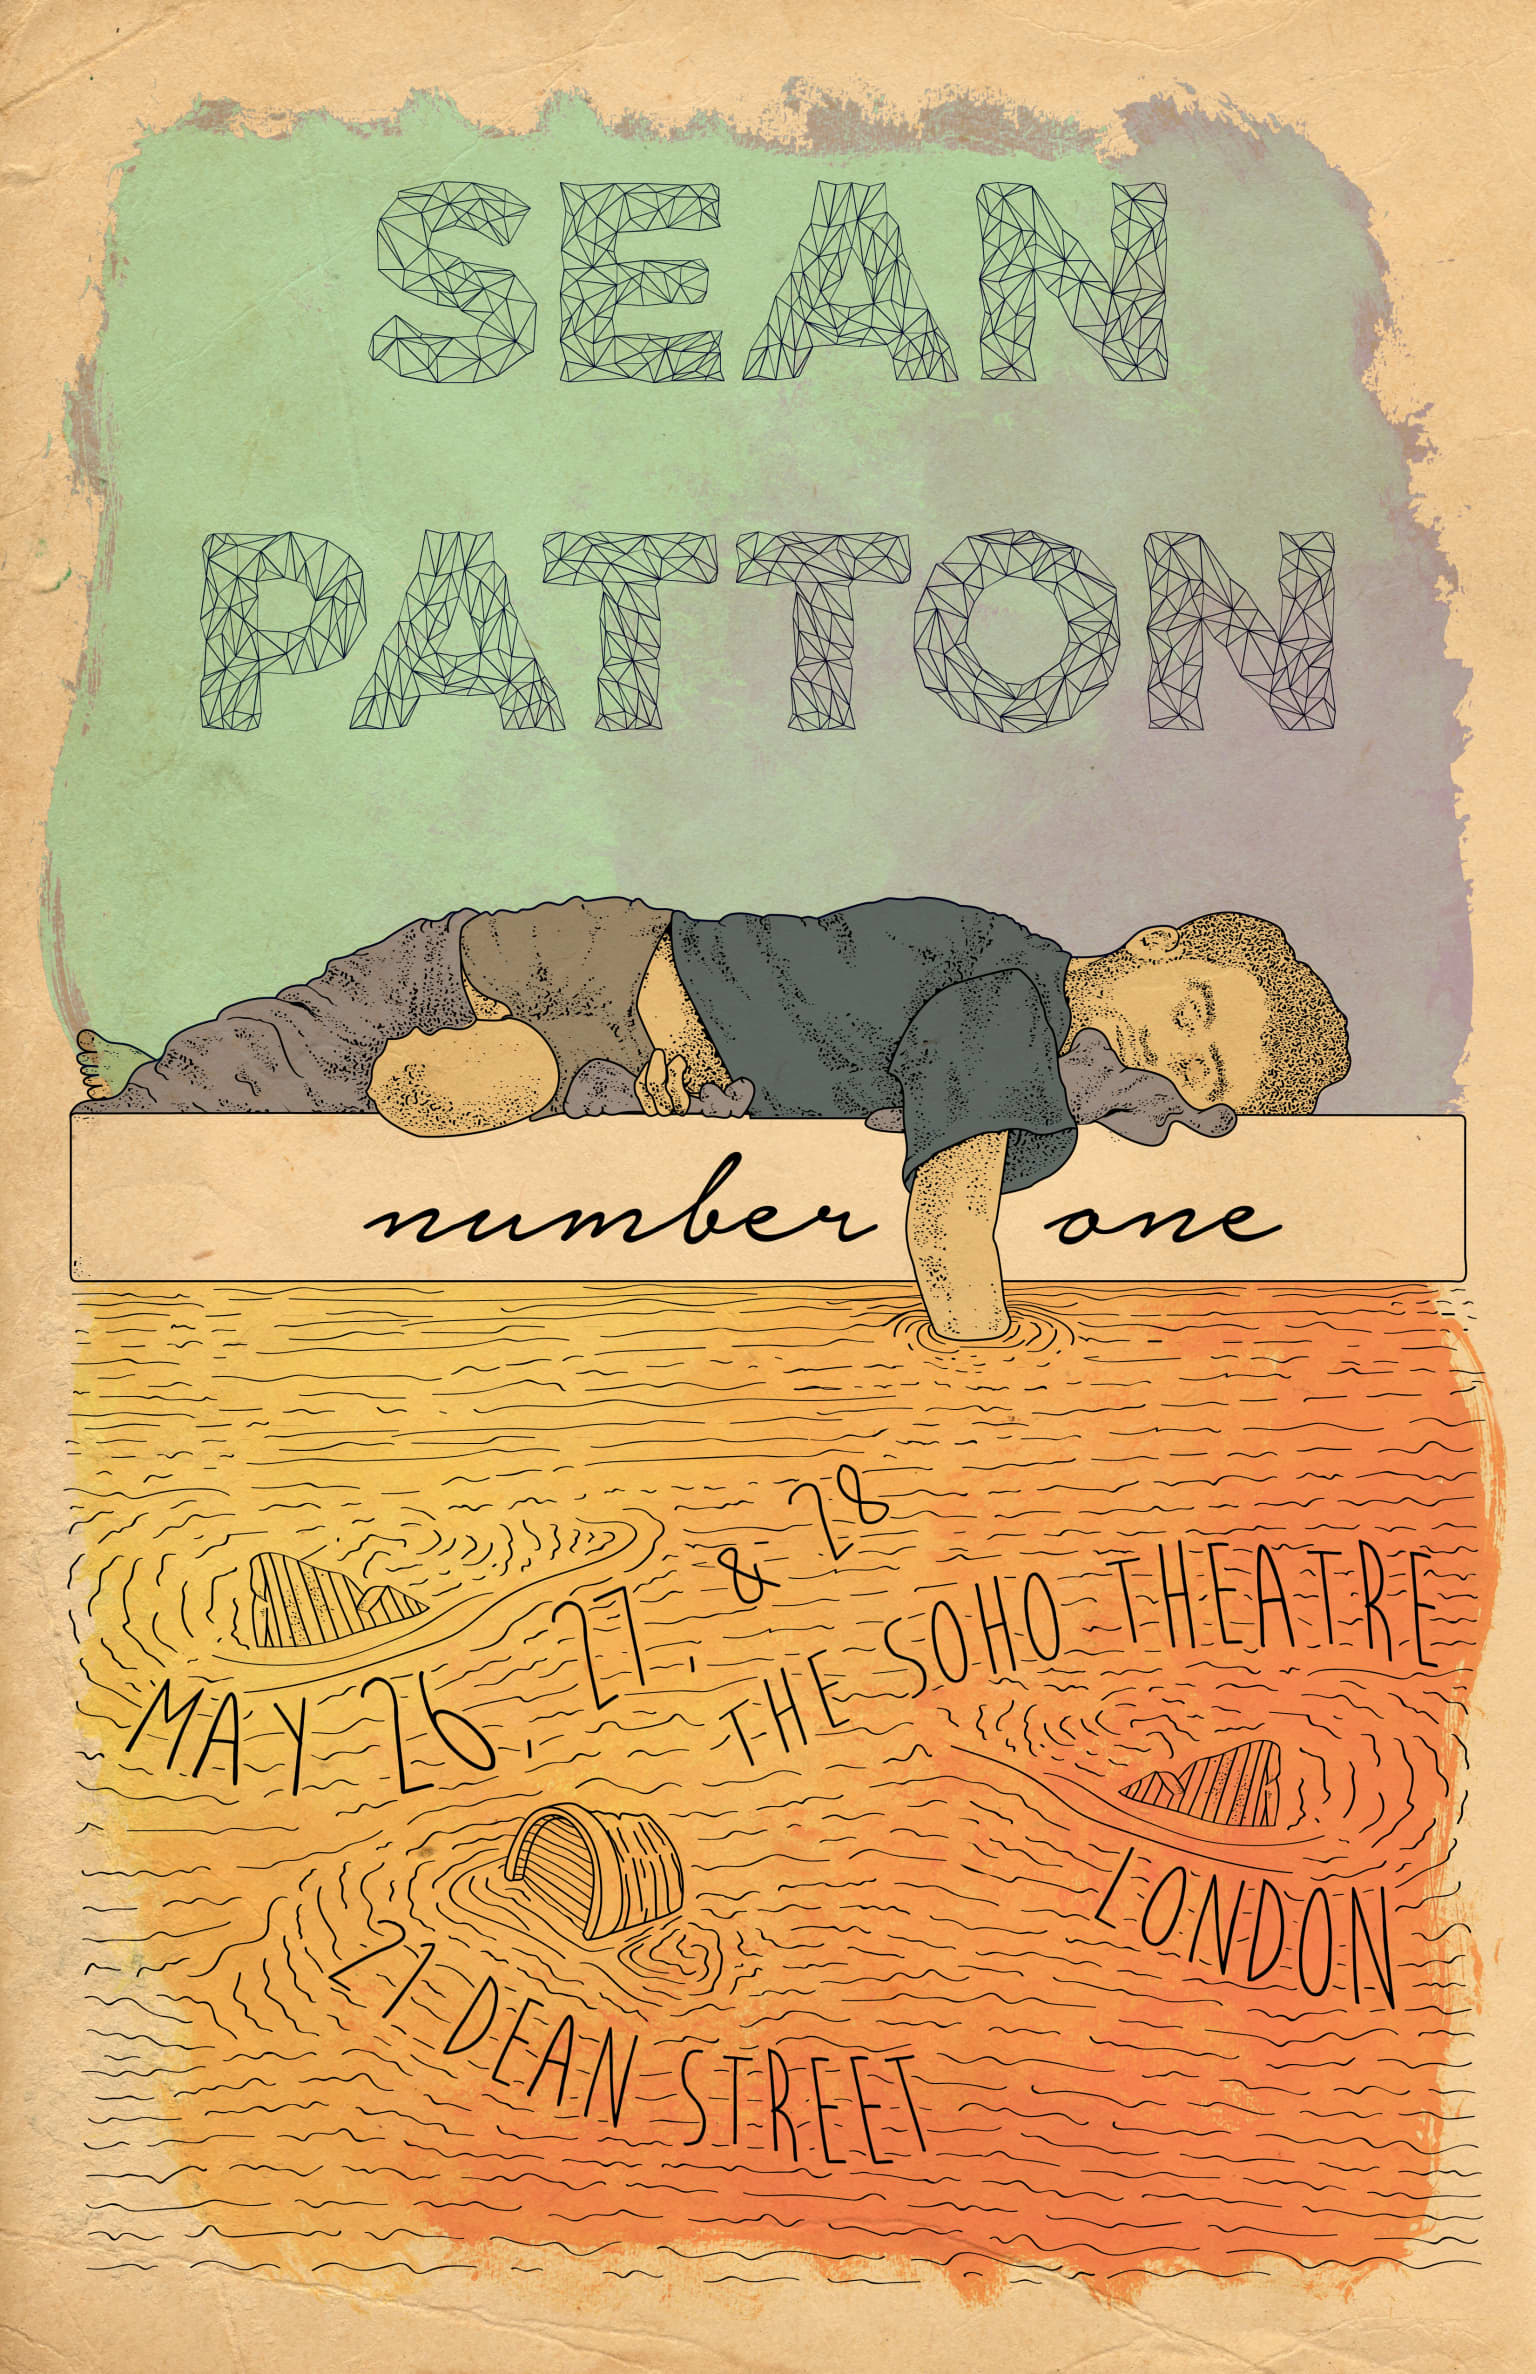 Sean Patton's Number One Poster